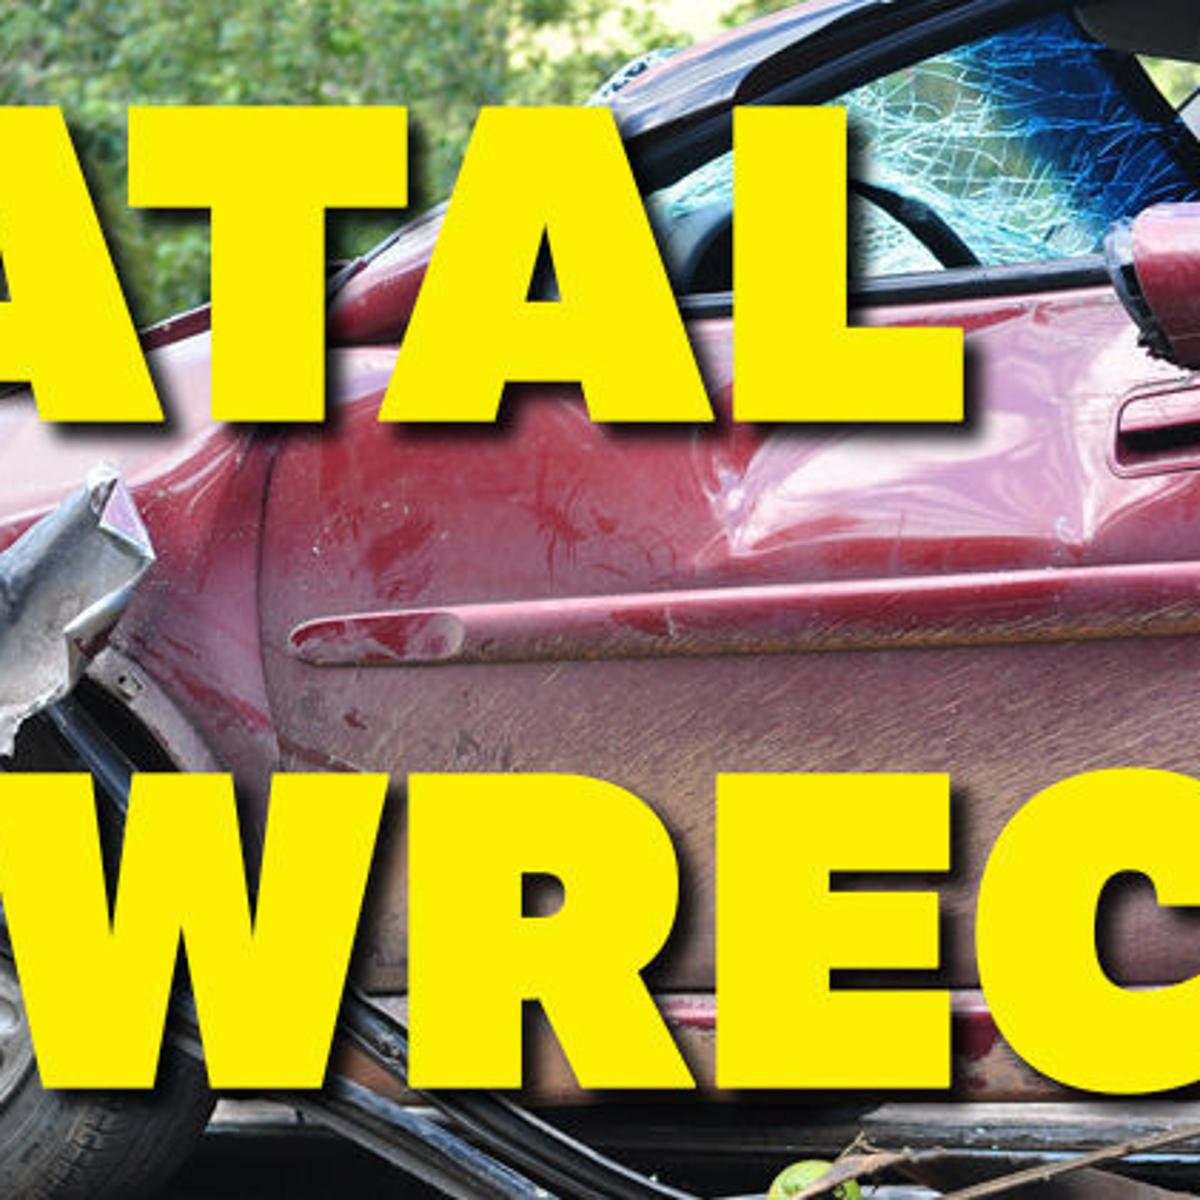 79-year-old man died in Logan County crash Wednesday | WV News